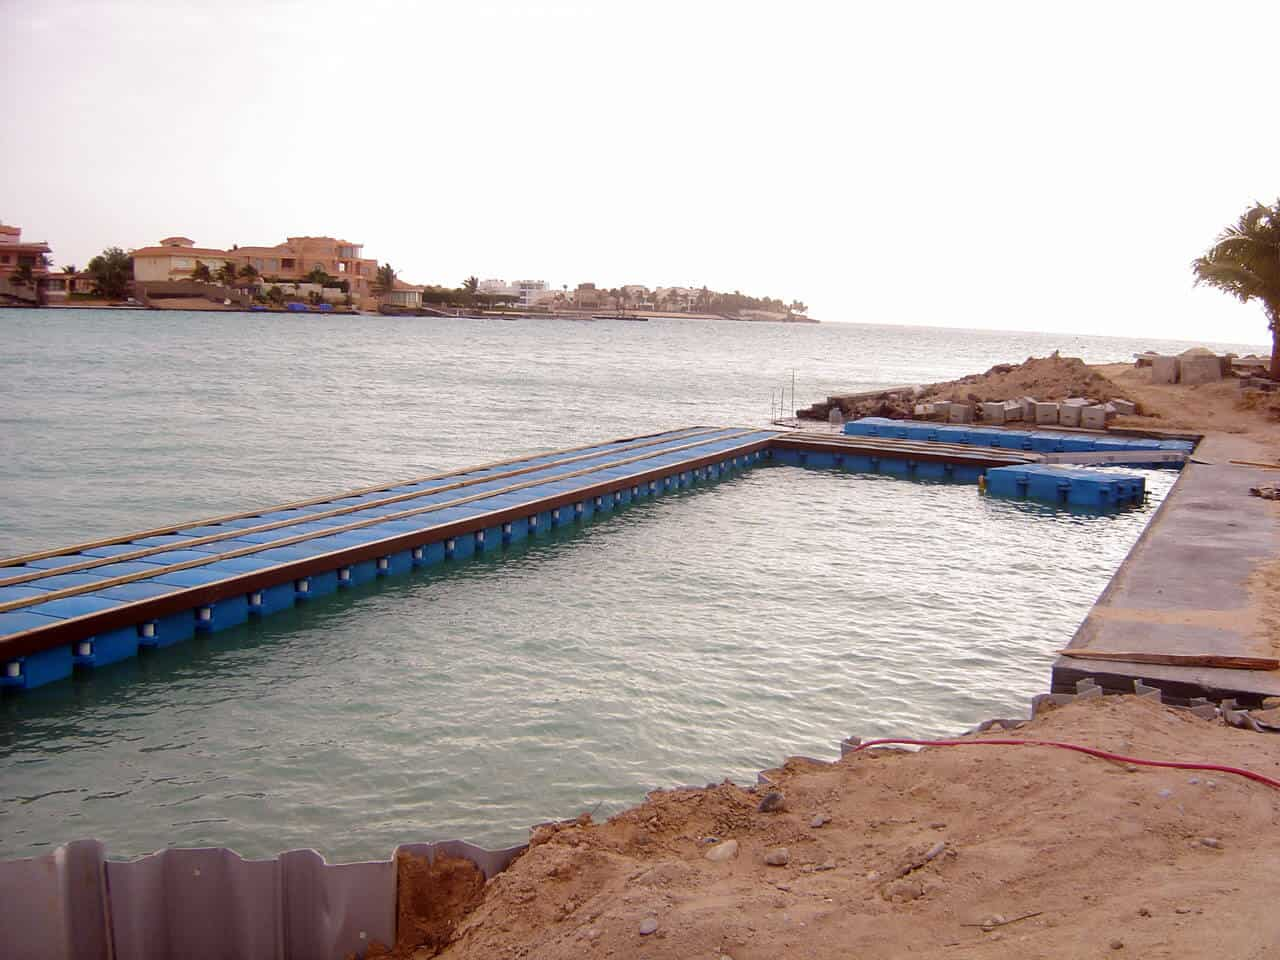 Airfloat Modular Pontoon System in use - Saudi Arabia - 7